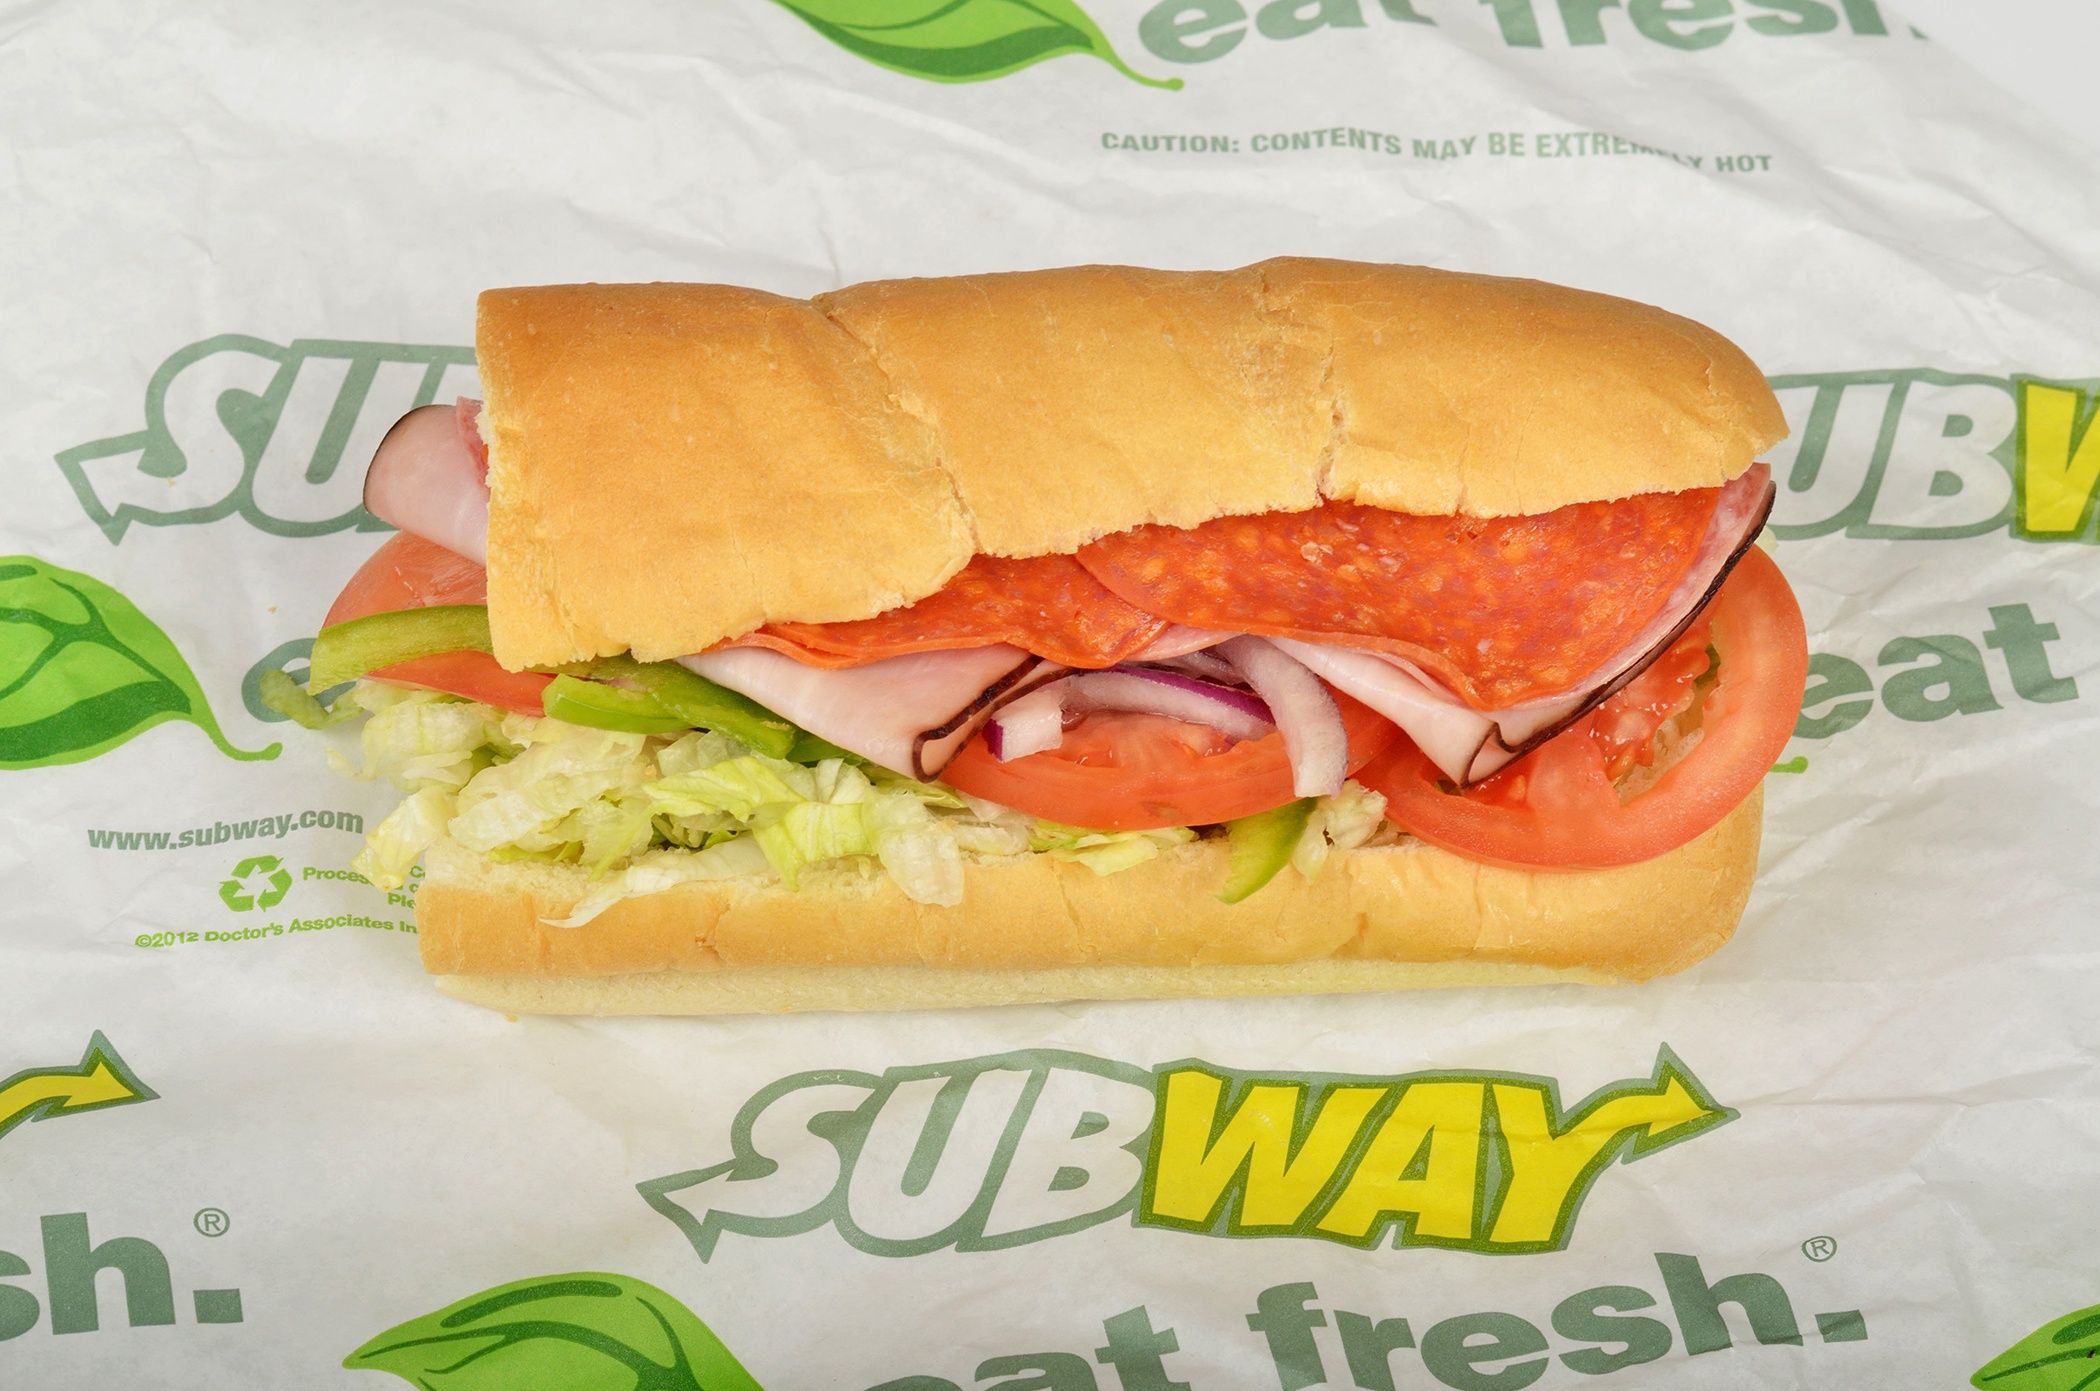 Subway BMT sub sandwich on italian roll with Genoa Salami, Black Forest Ham, Pepperoni, lettuce, tomato, red onion on roll.